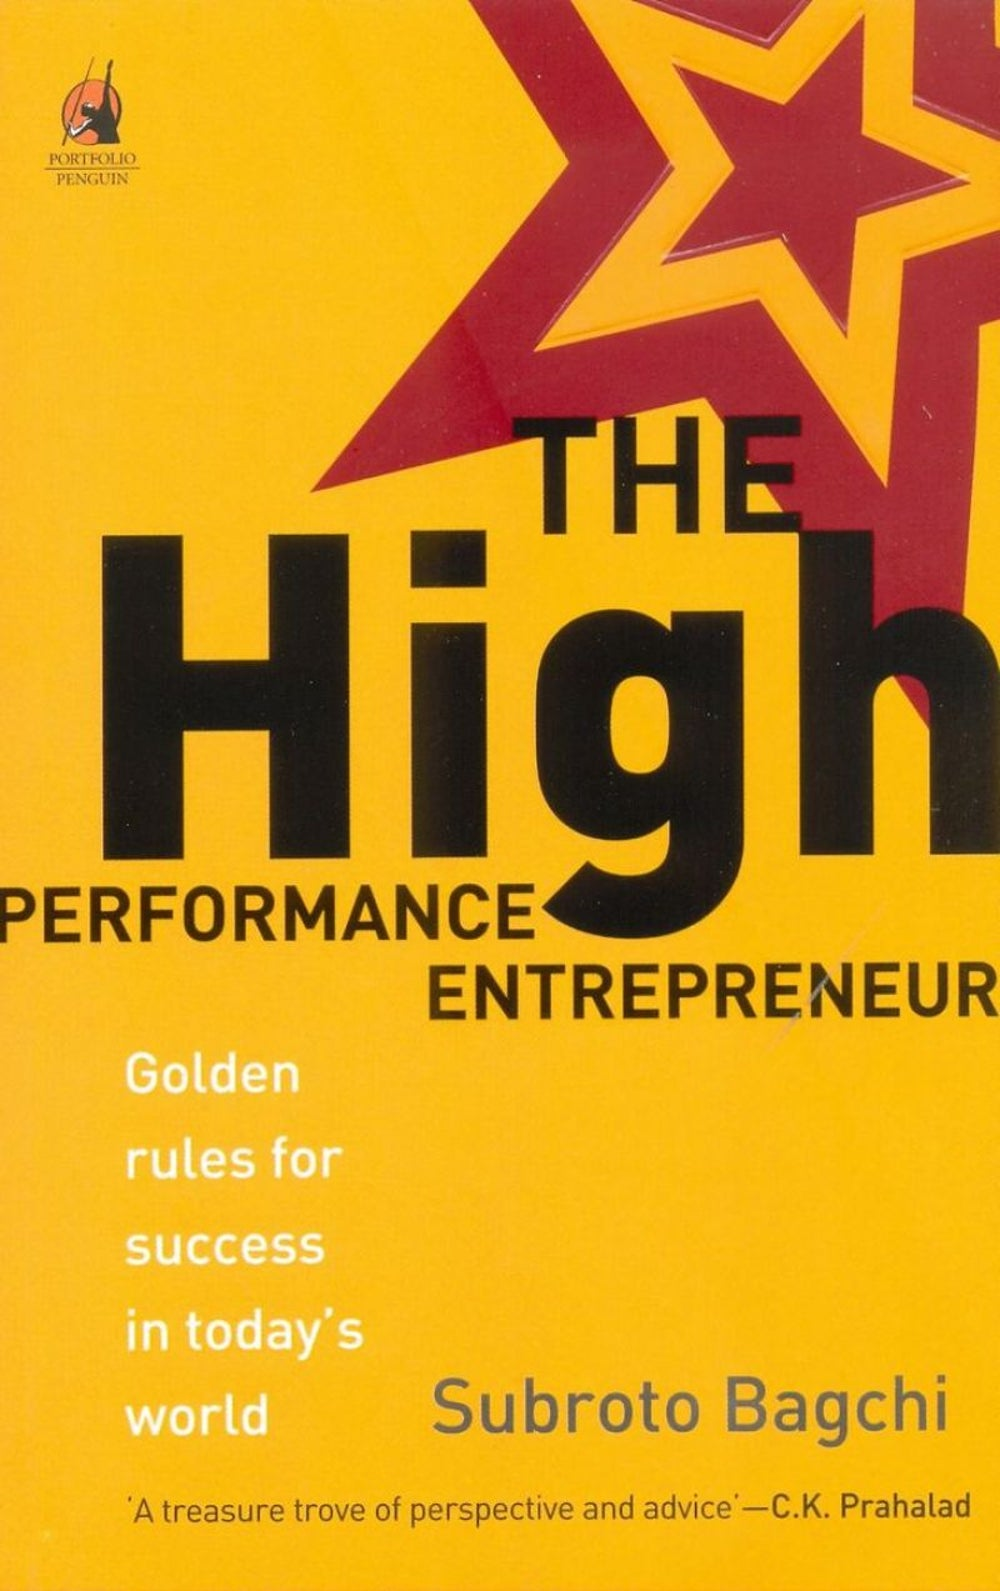 THE HIGH PERFORMANCE ENTREPRENEUR by Subroto Bagc